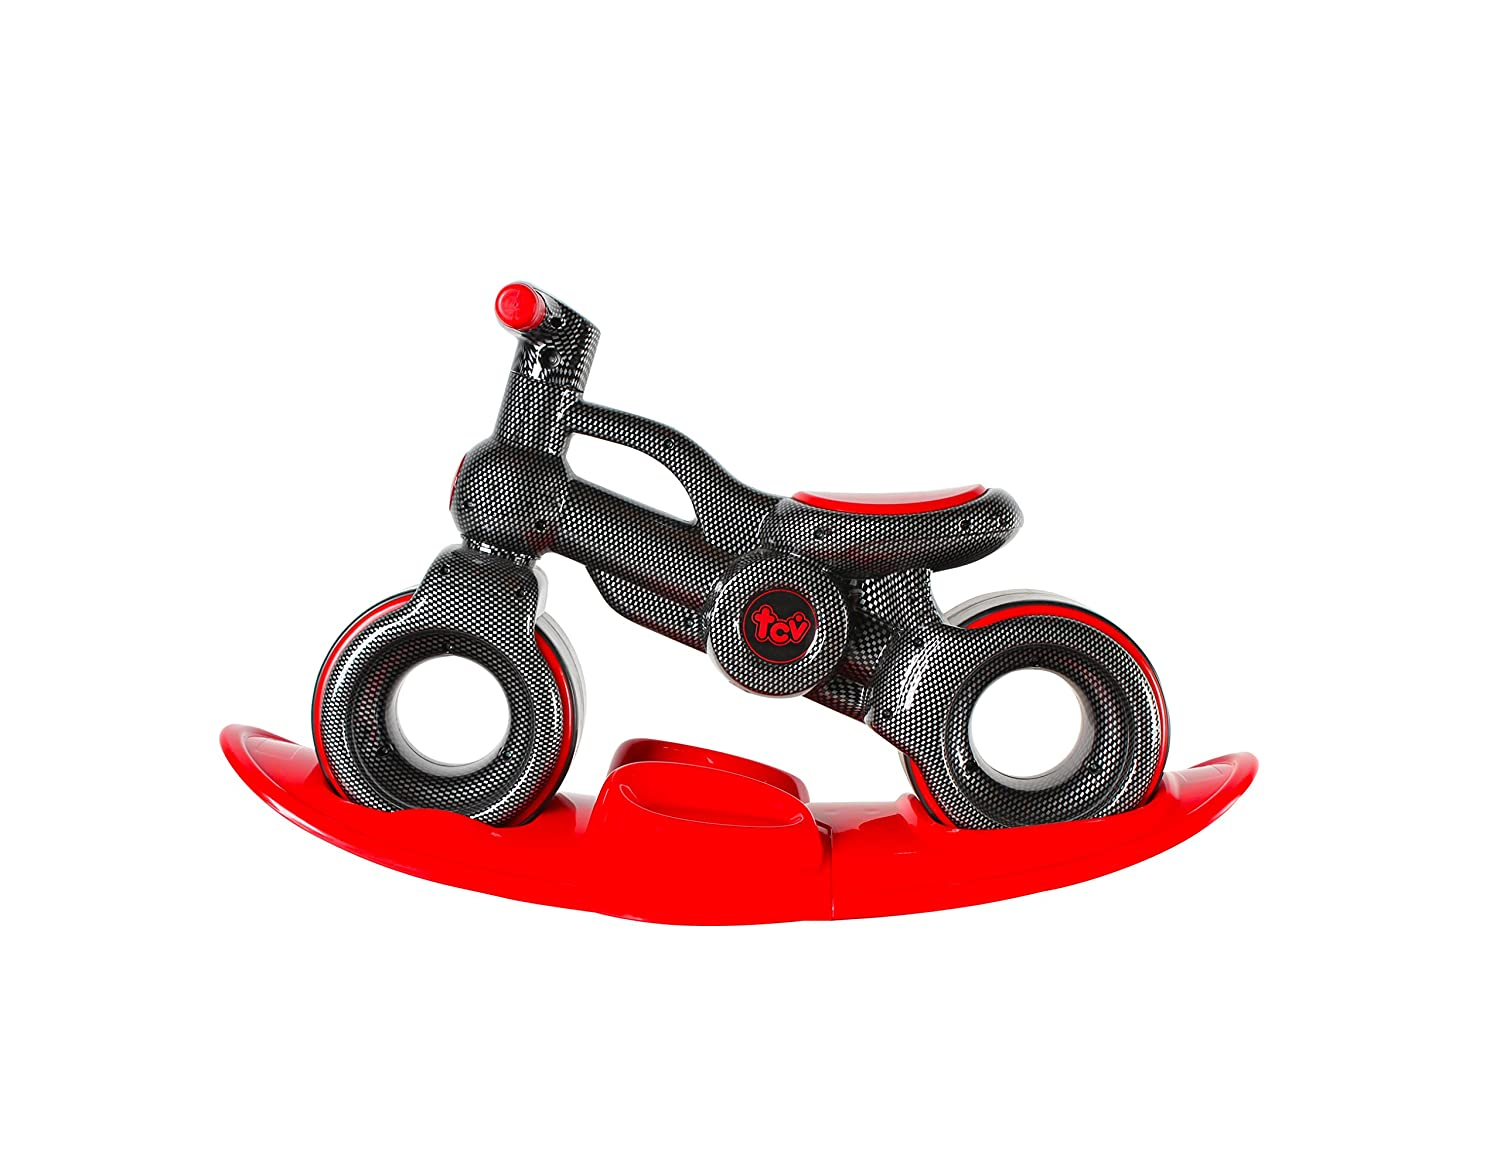 MIGOTOYS TCV-V100R 2 in 1 Baby Rider Balance Bike and Rocker Board Black Made in Taiwan